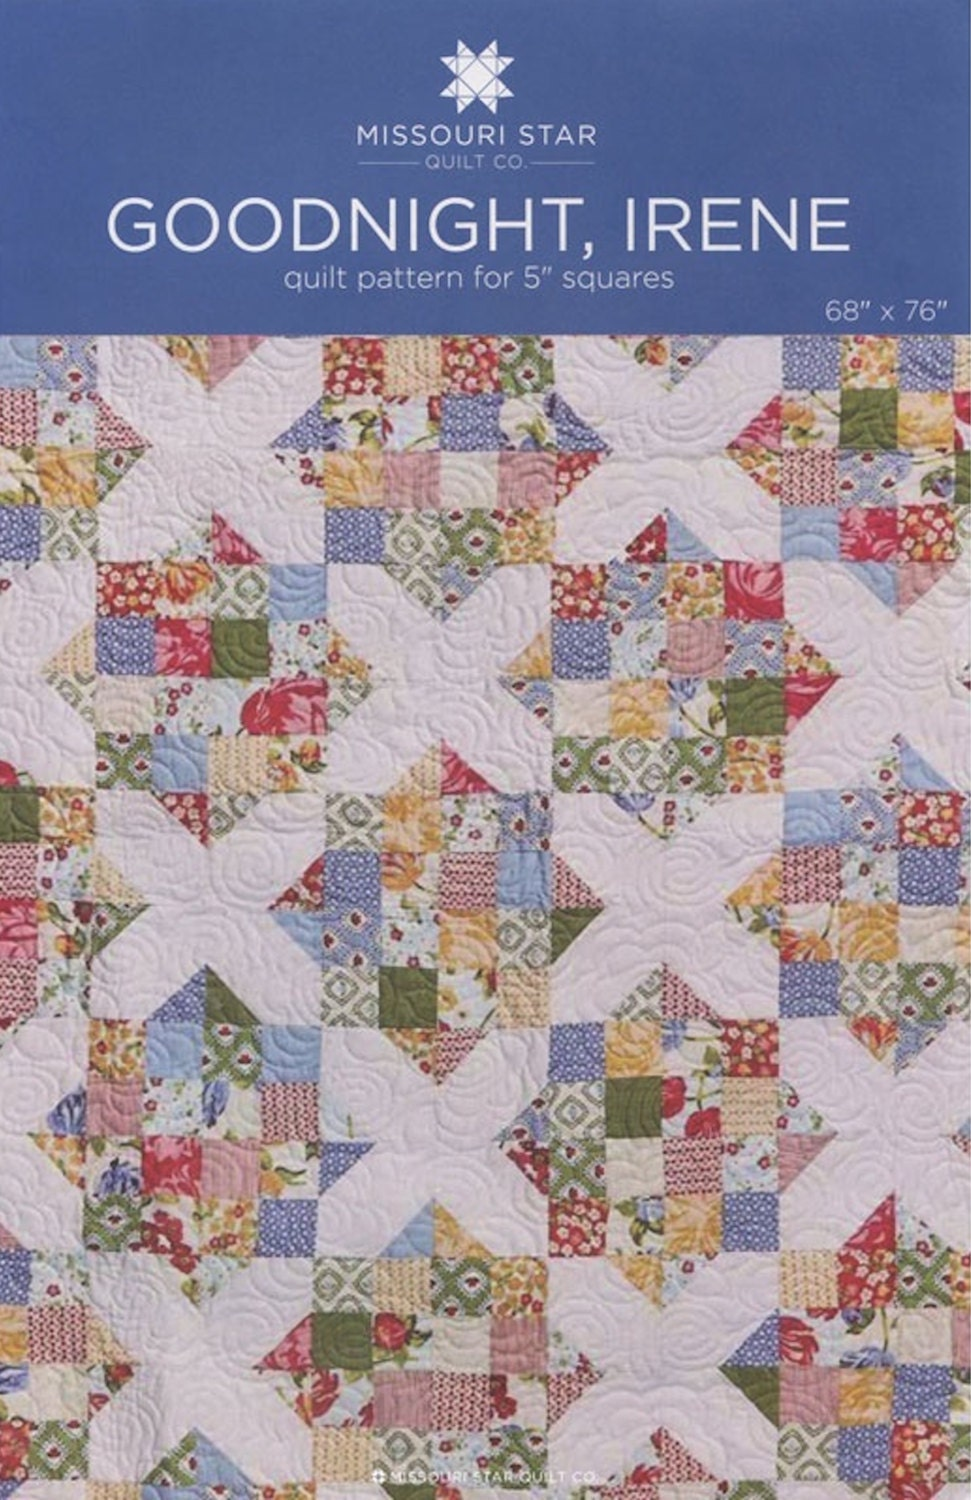 Msqc Goodnight Irene Quilt Pattern Charm Pack 5